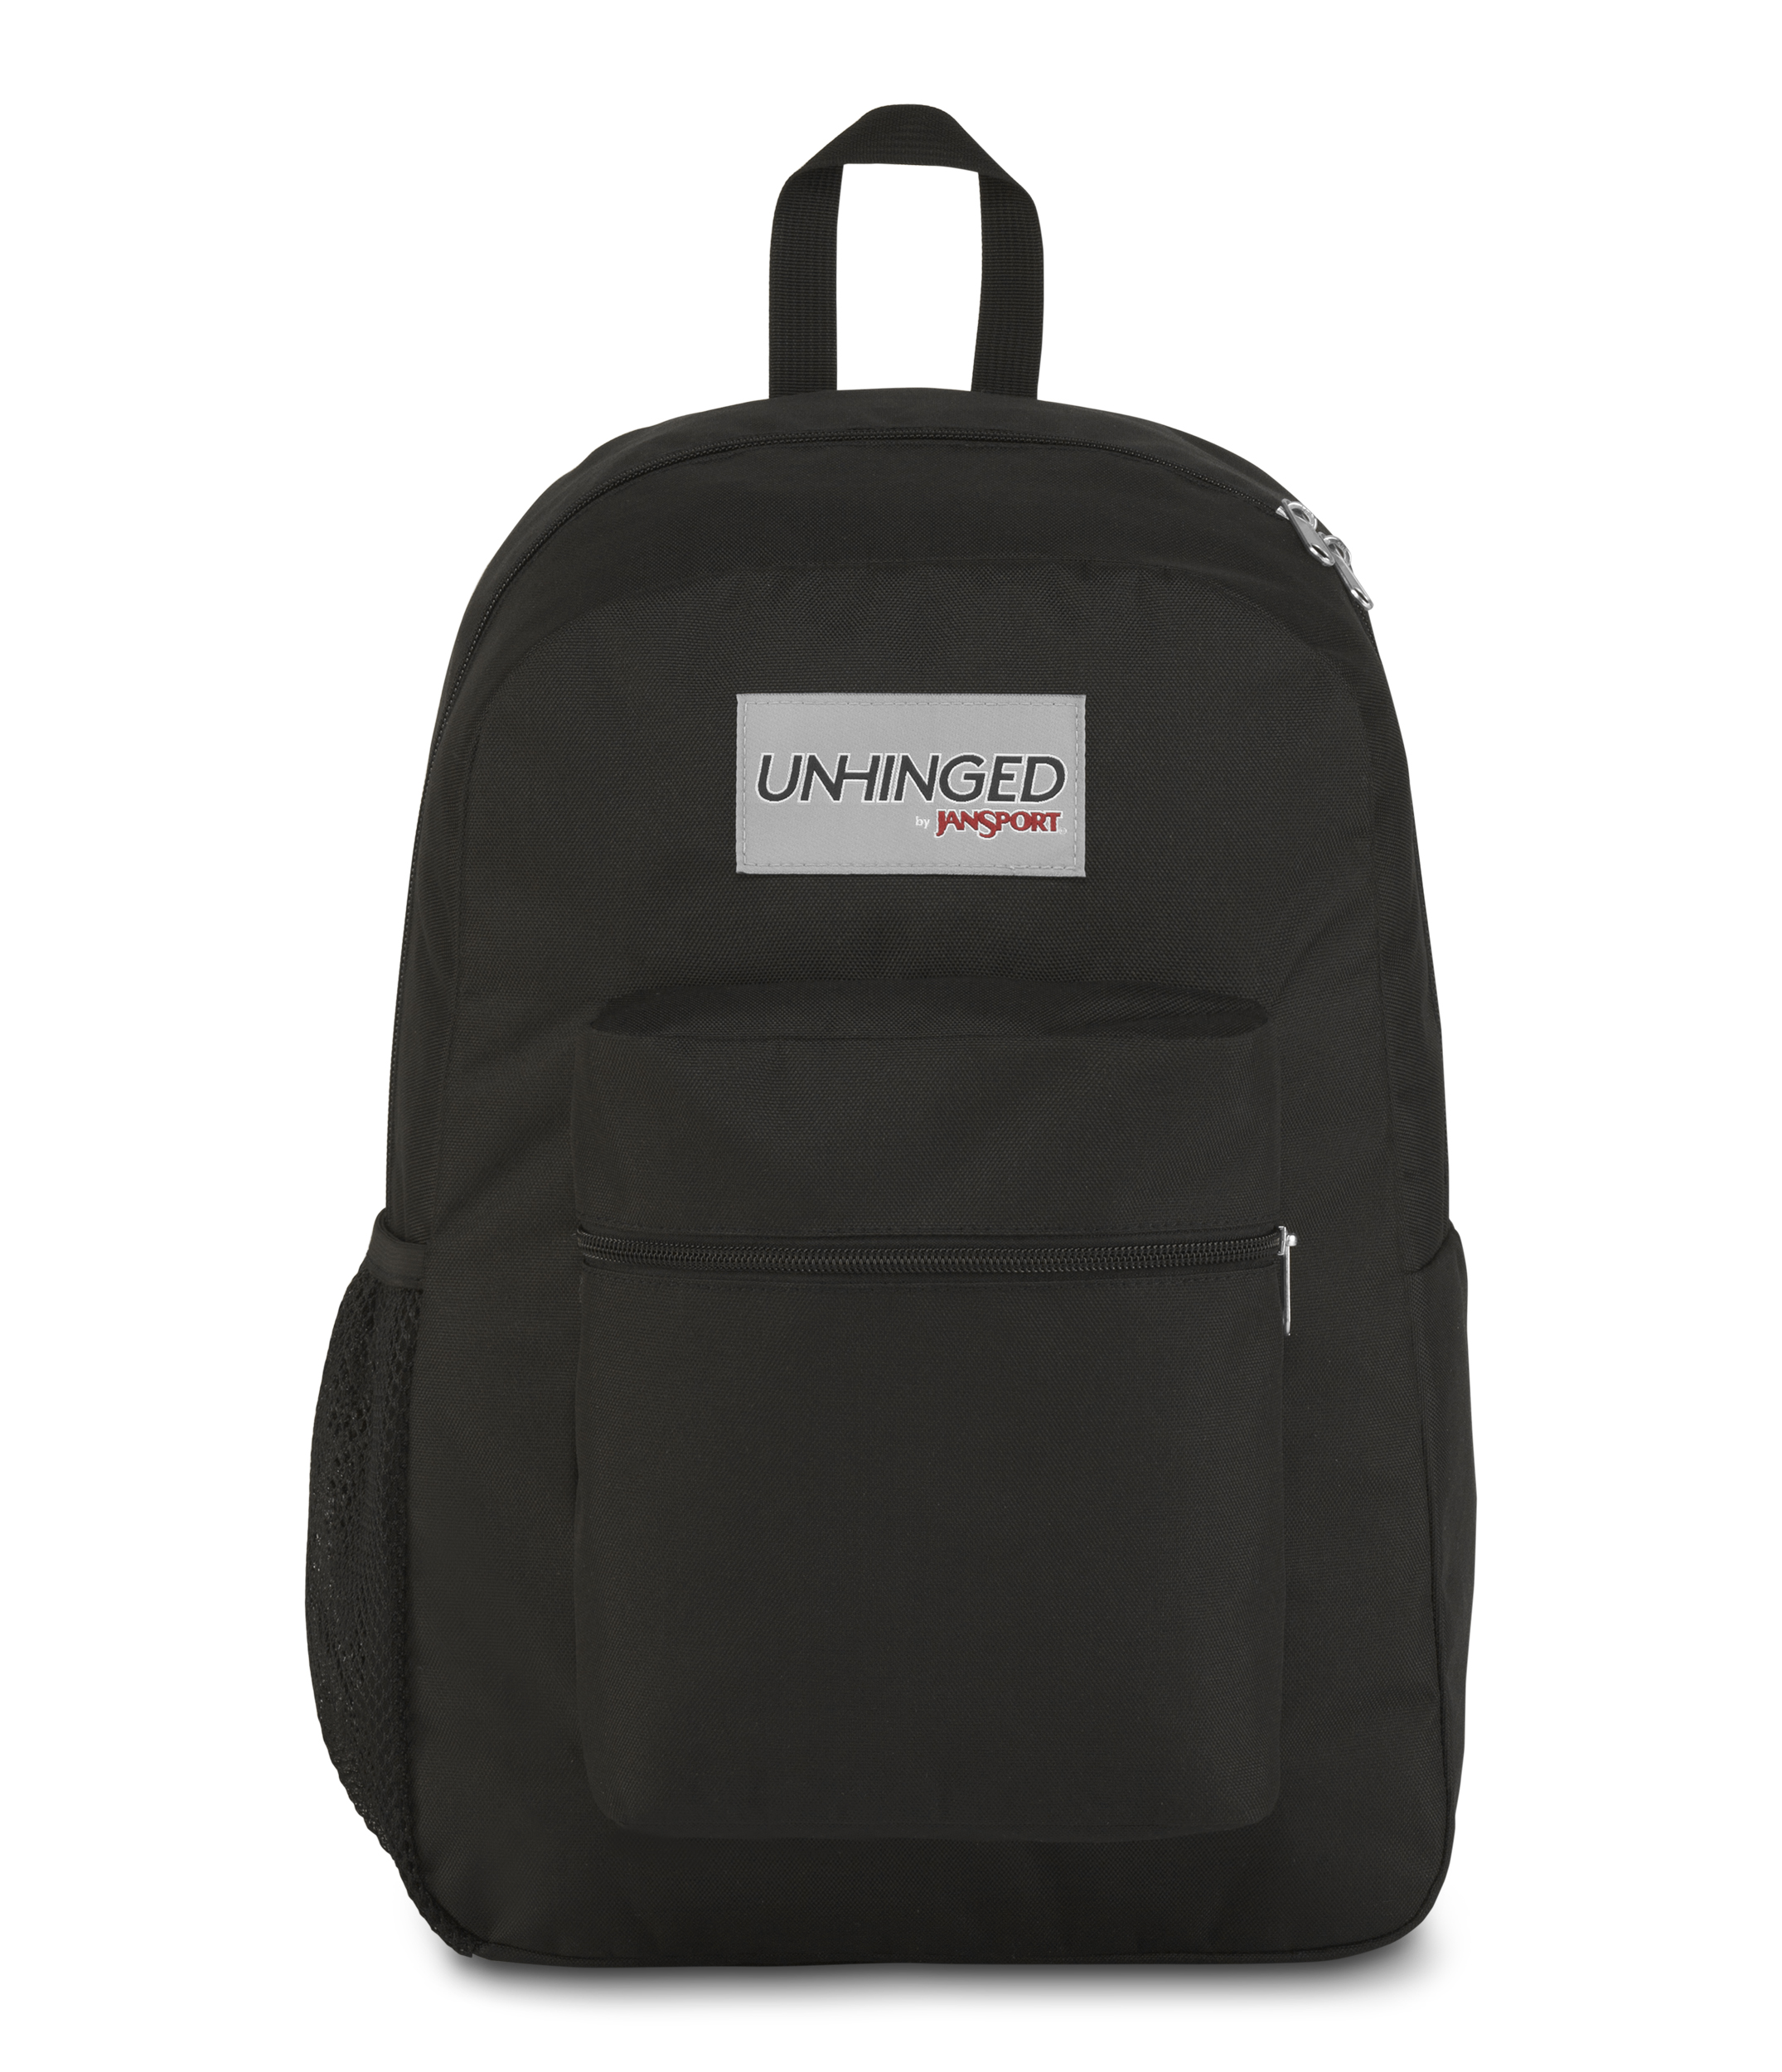 Unhinged by JanSport - Unhinged By Jansport